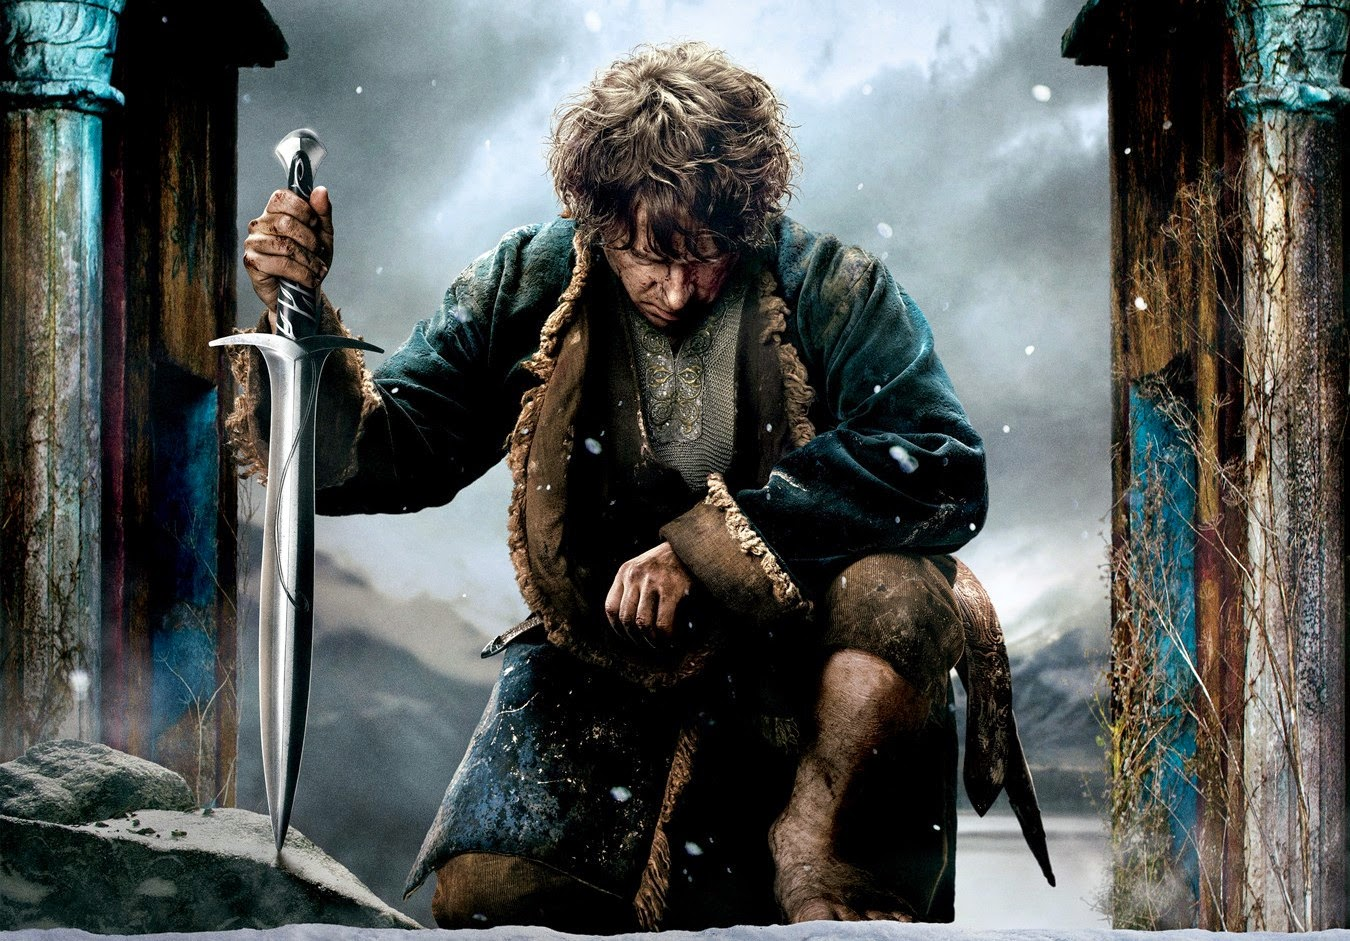 The Hobbit: The Battle of the Five Armies - First Trailer - SDCC 2014